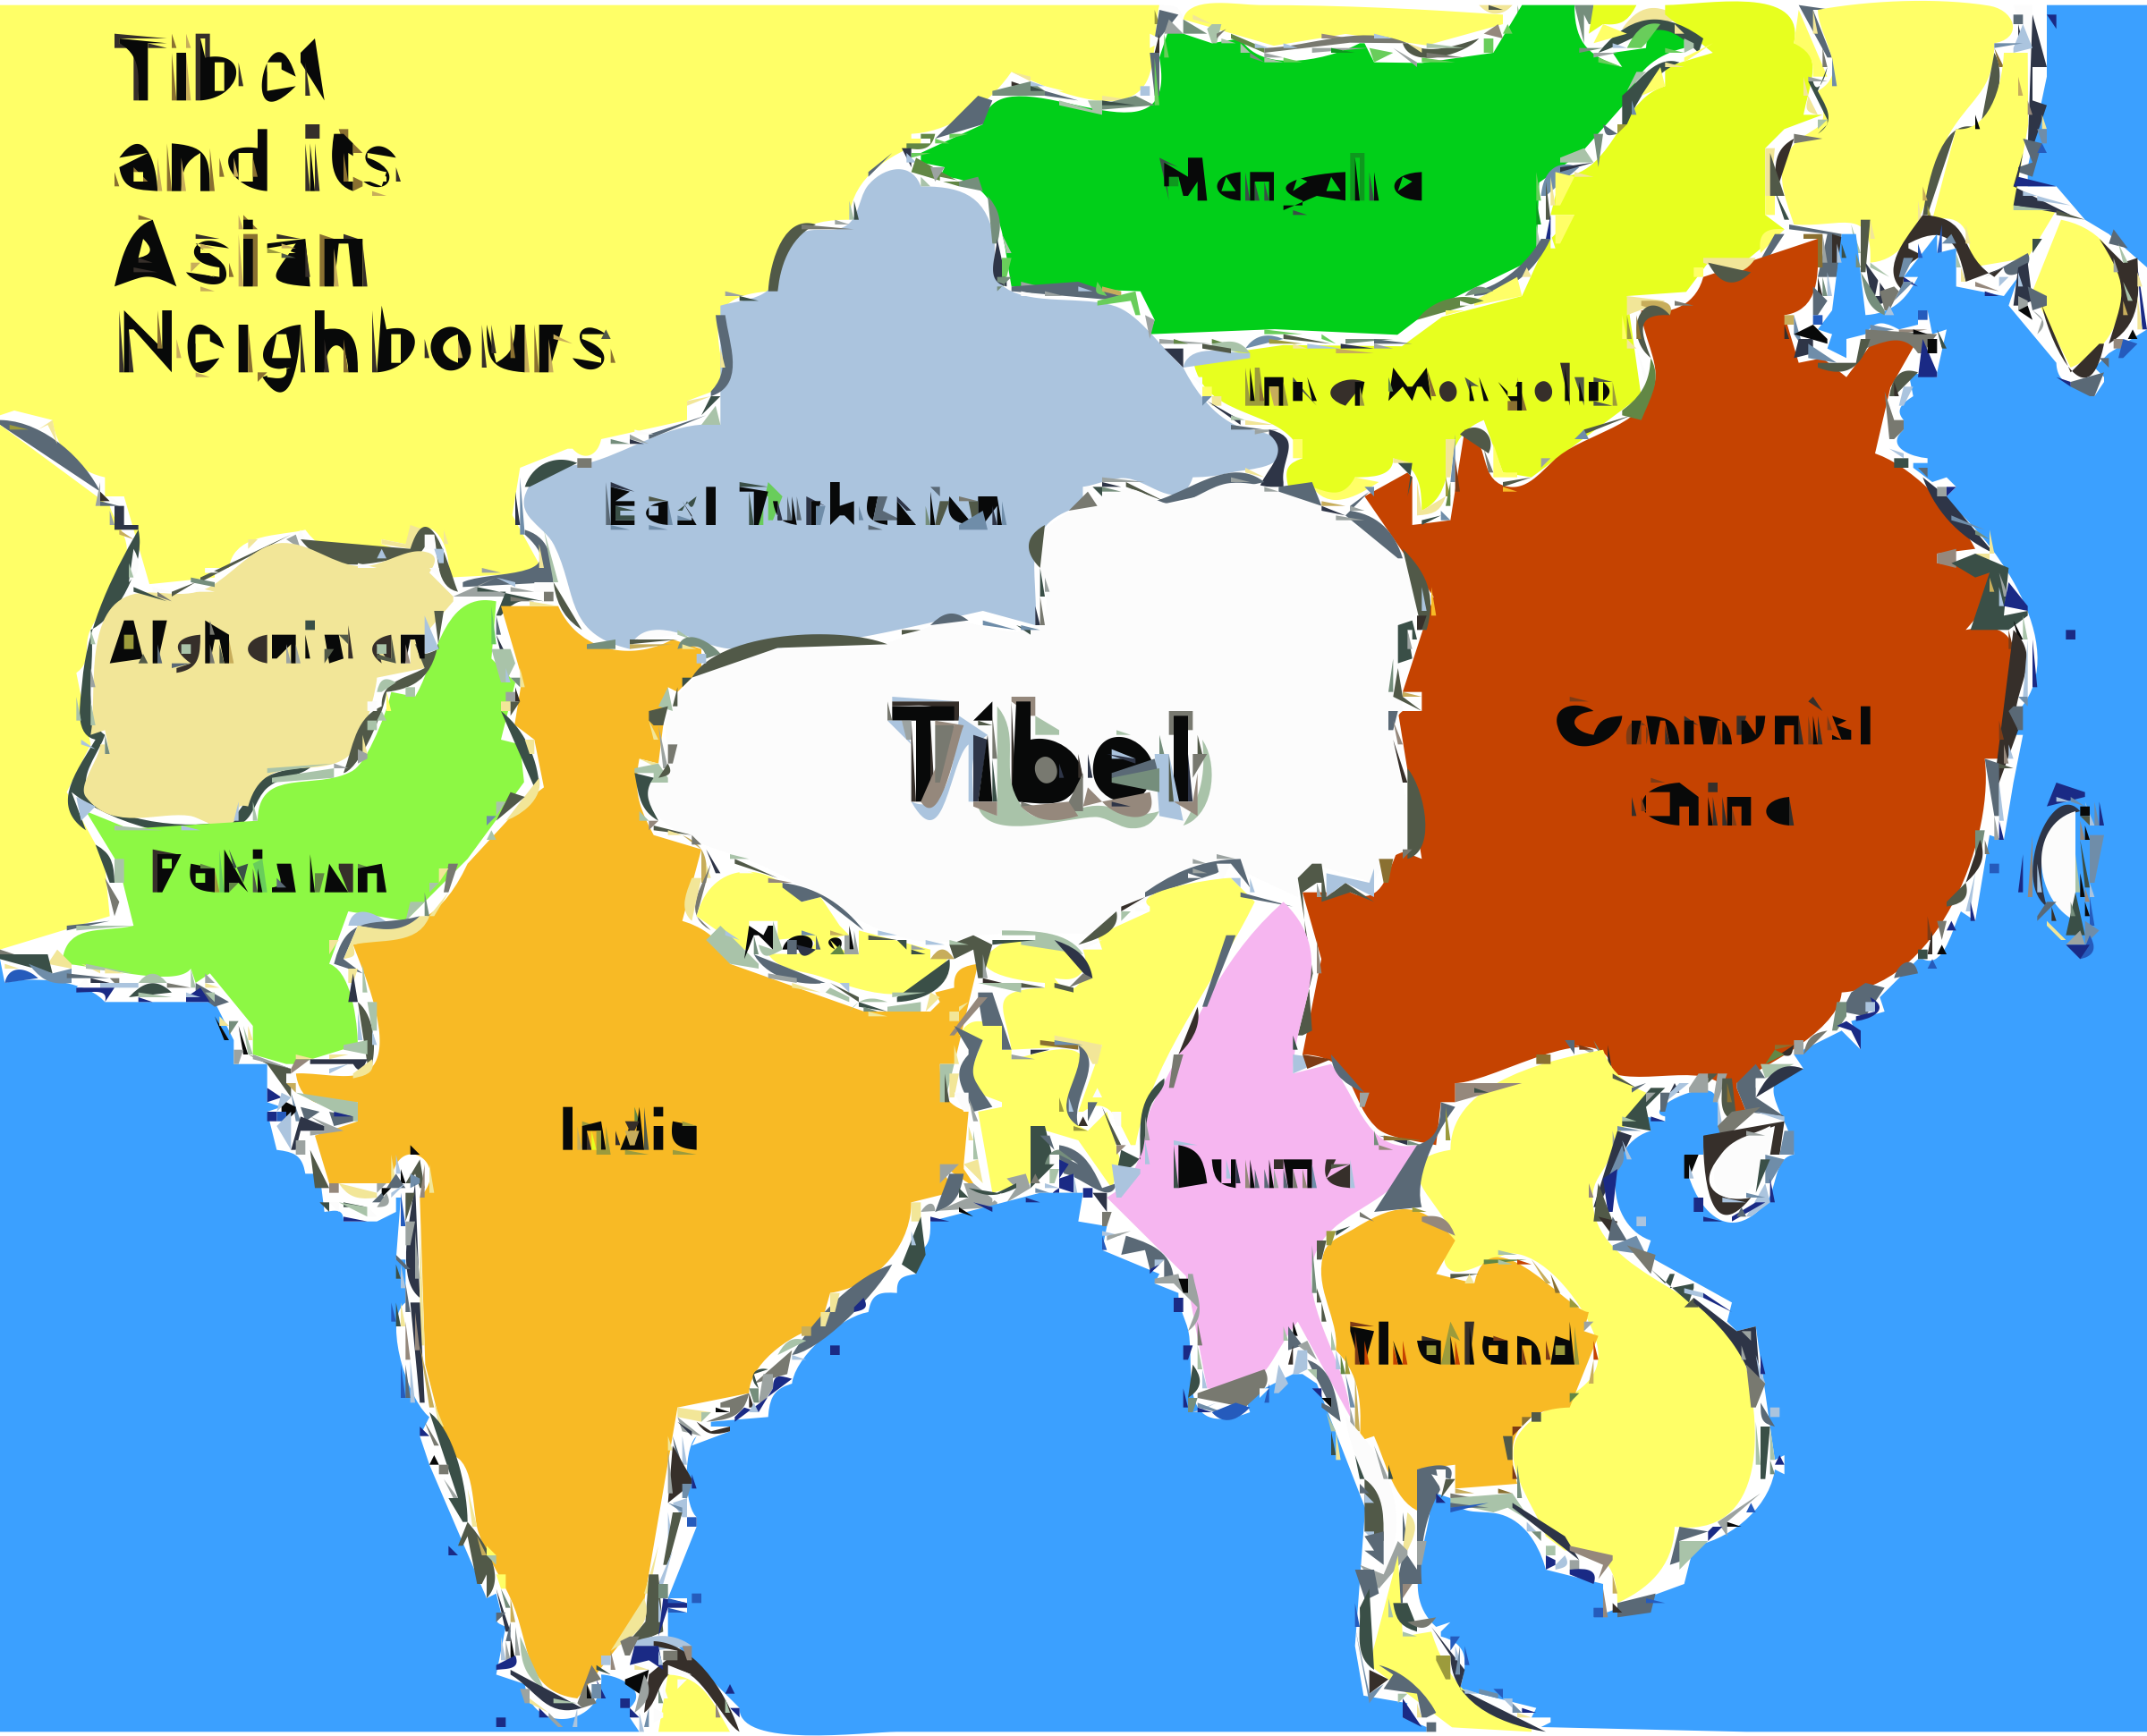 Tibet clipart #6, Download drawings